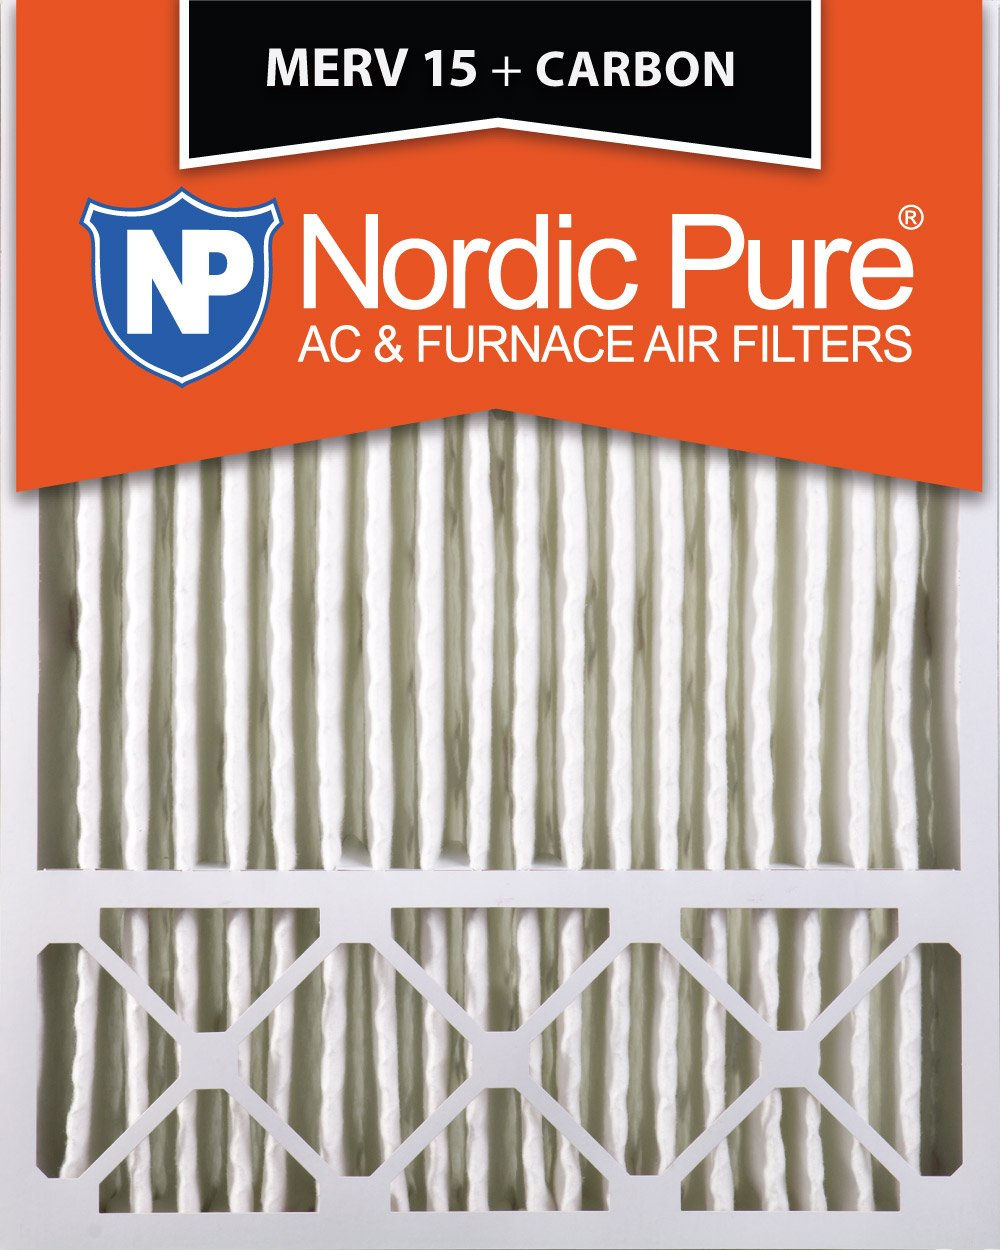 Nordic Pure 20x25x5 Lennox X6675 Replacement MERV 15 Plus Carbon AC Furnace Air Filter Box of 1 4-3//8 Actual Depth